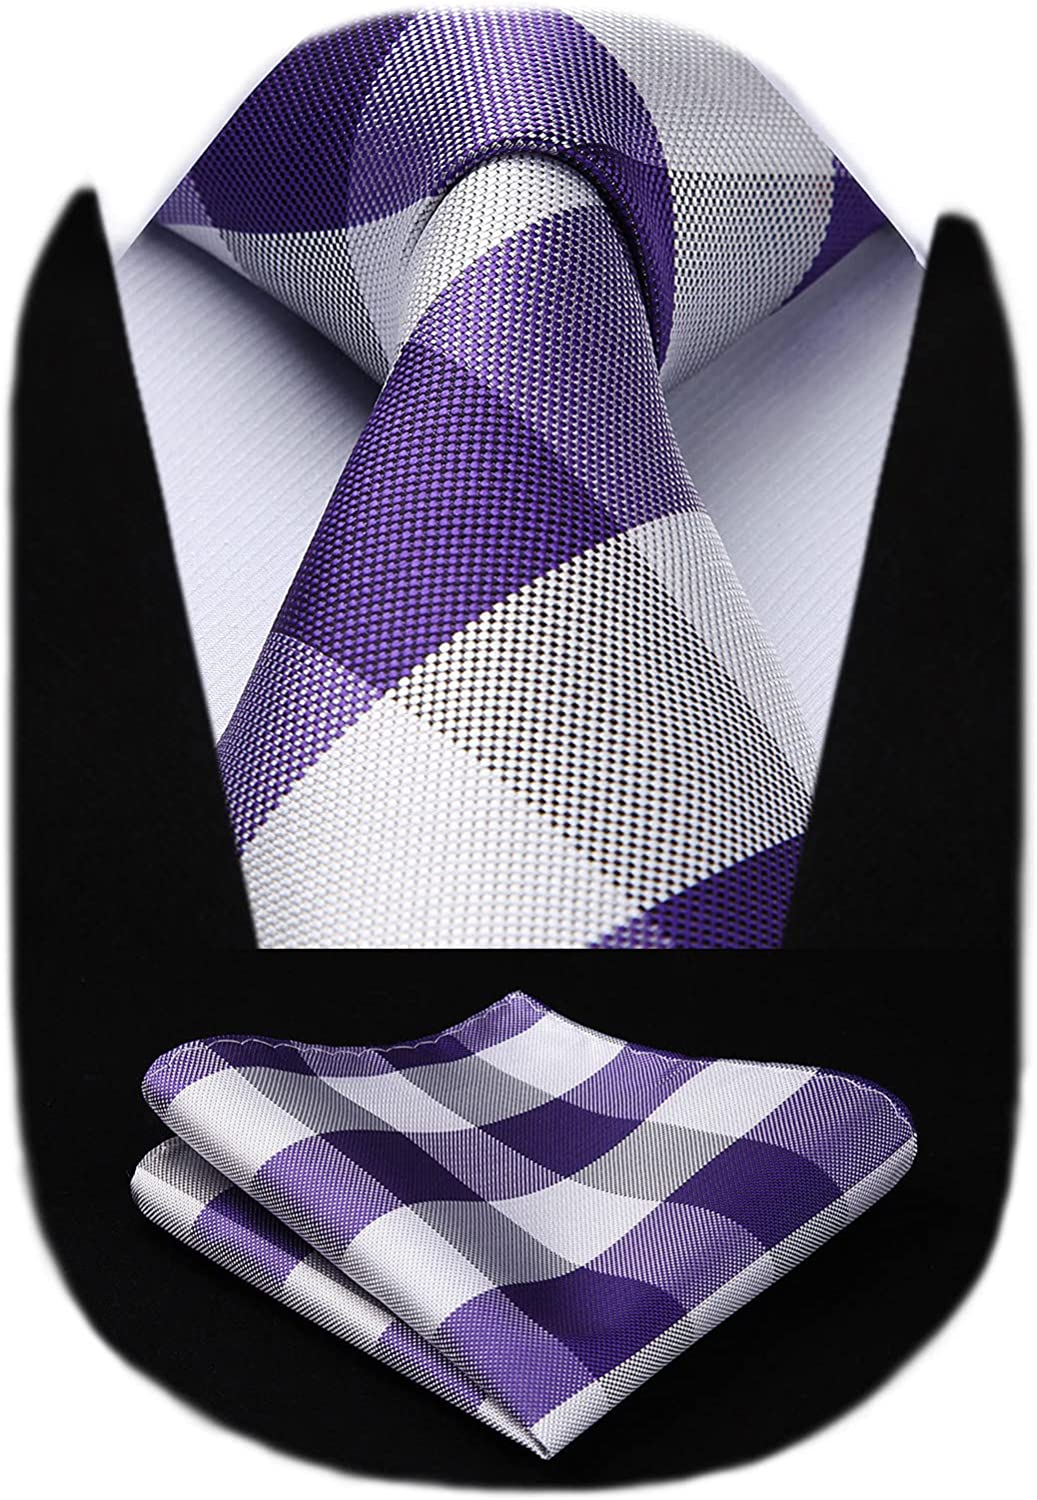 HISDERN Shipping included Plaid Checkered Tie Handkerchief Woven Classic Nec Men's New product!!